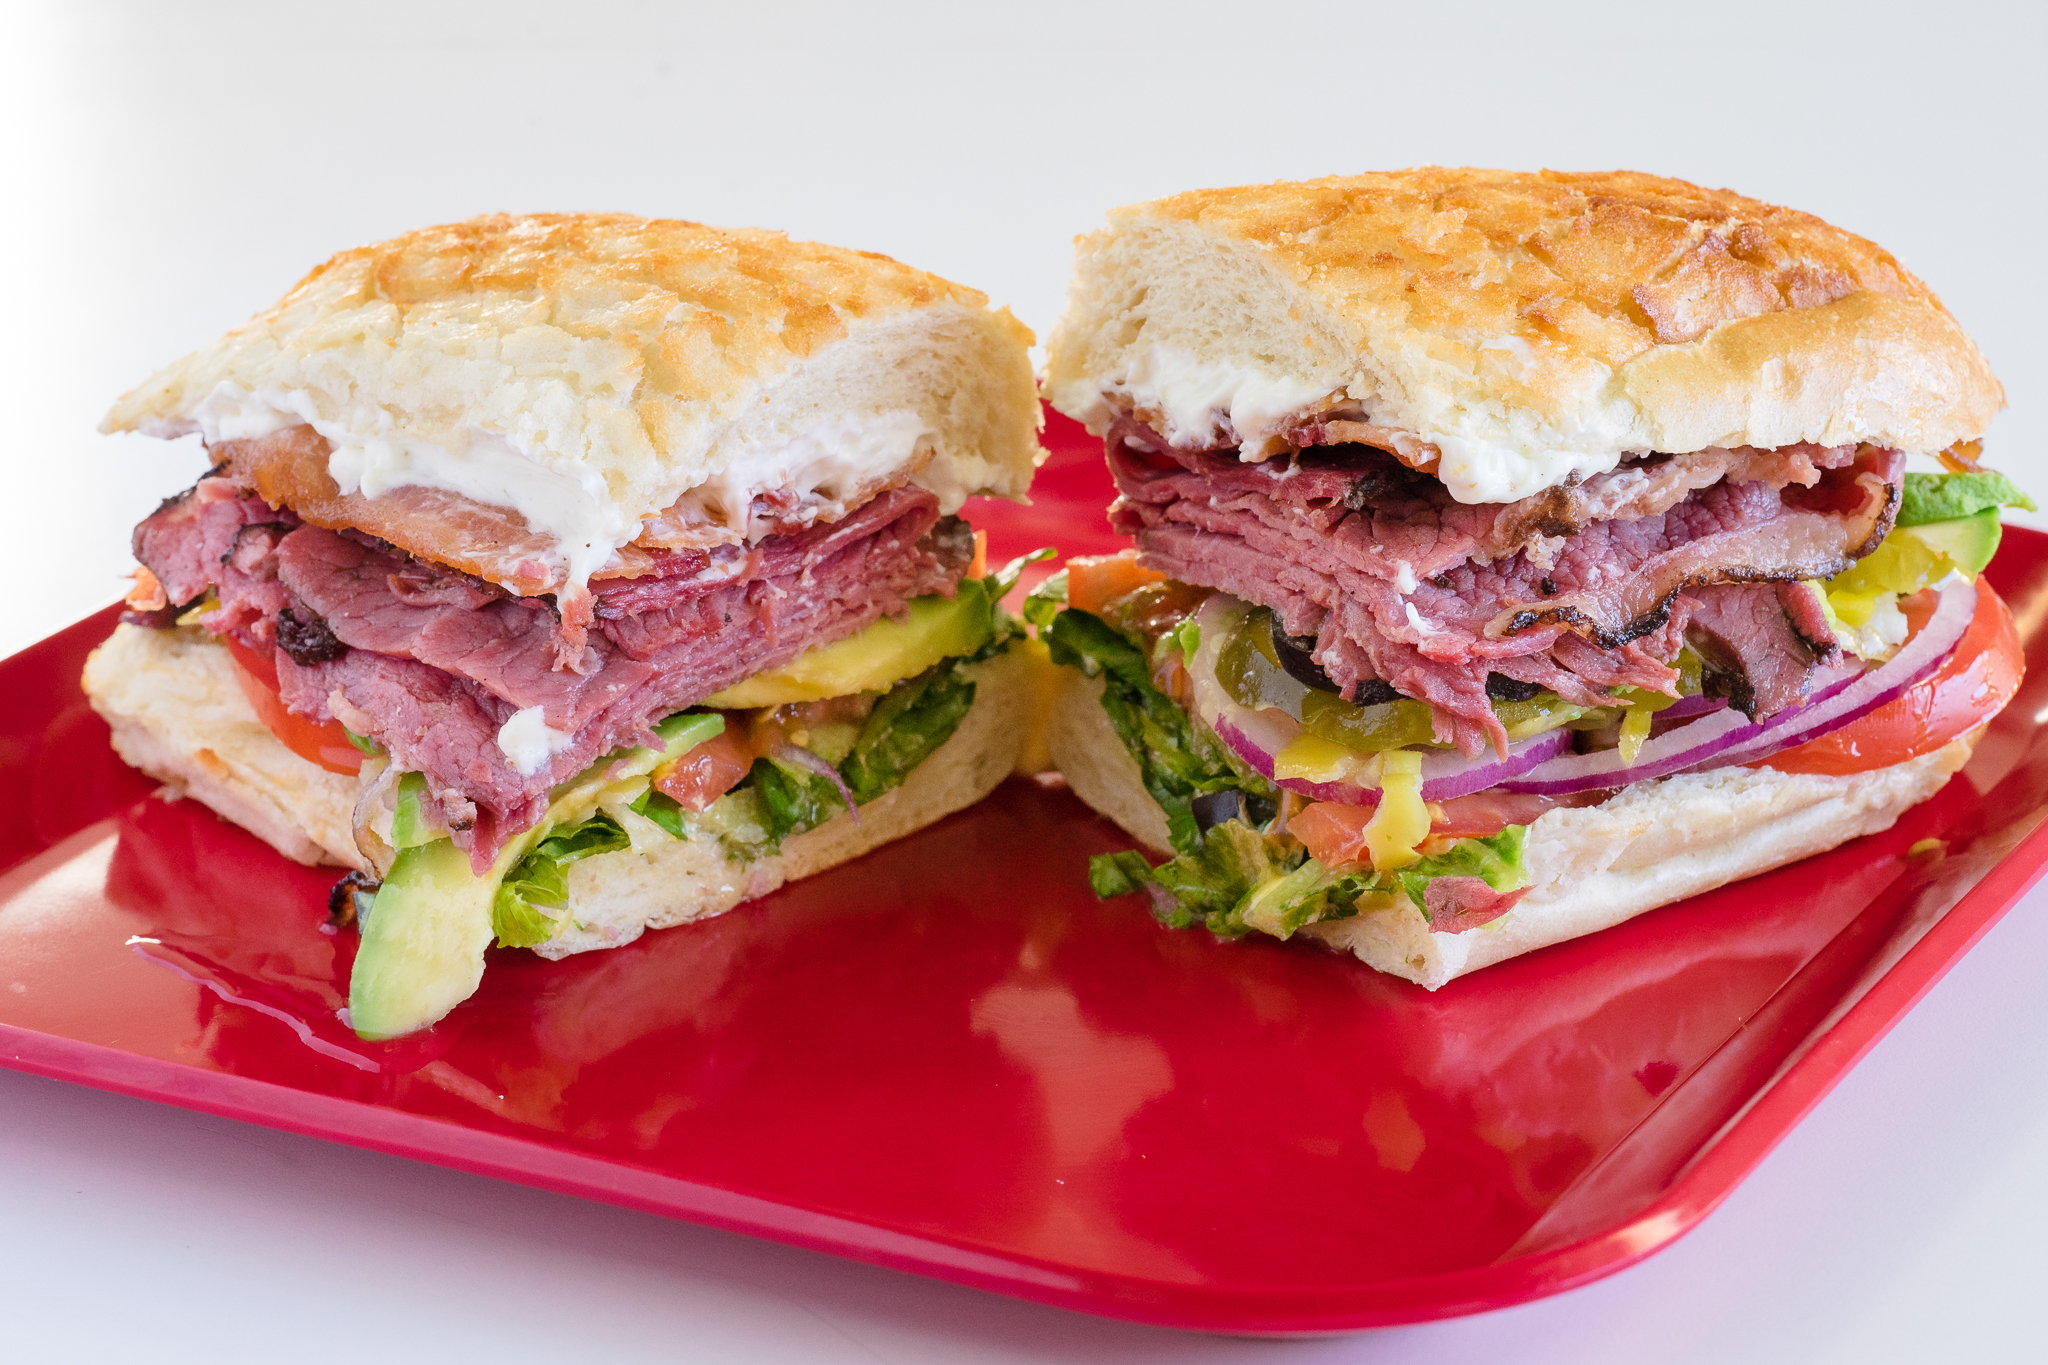 Pastrami and Bacon Sandwich with Cream Cheese, Avocado and Vegetables